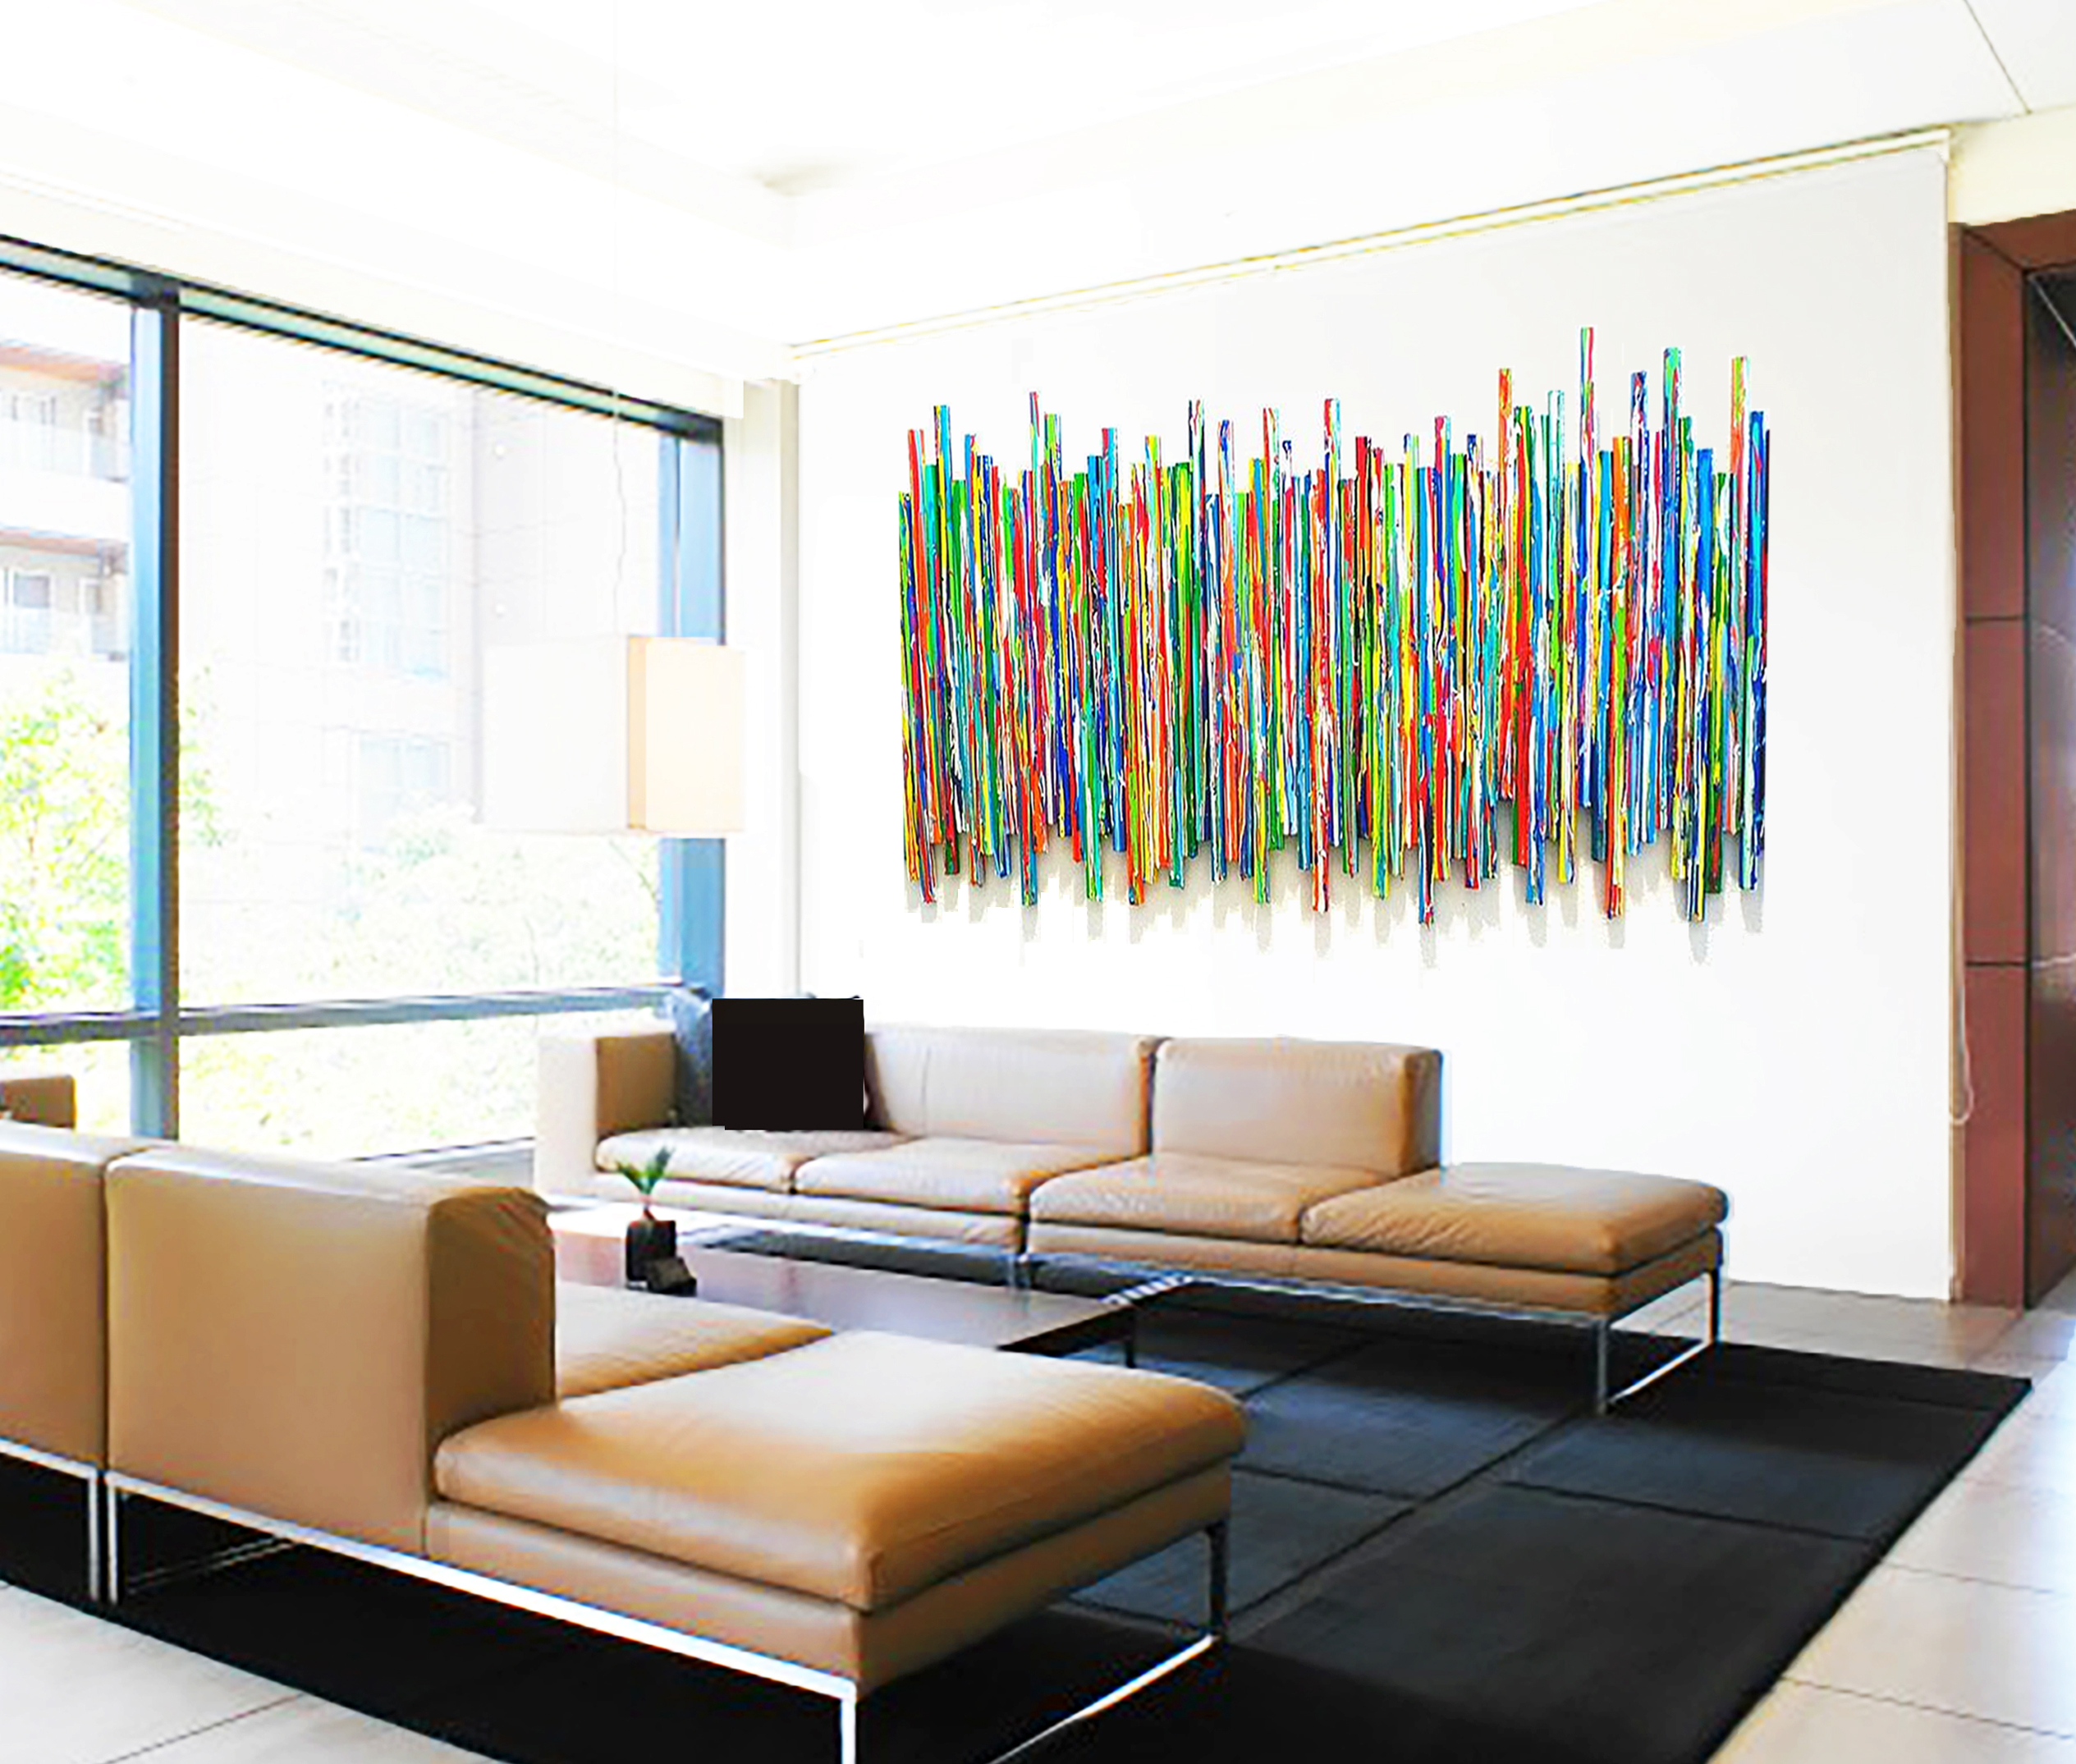 Modern waiting room art | Original Healthcare Art | Custom Corporate Art | Rosemary Pierce